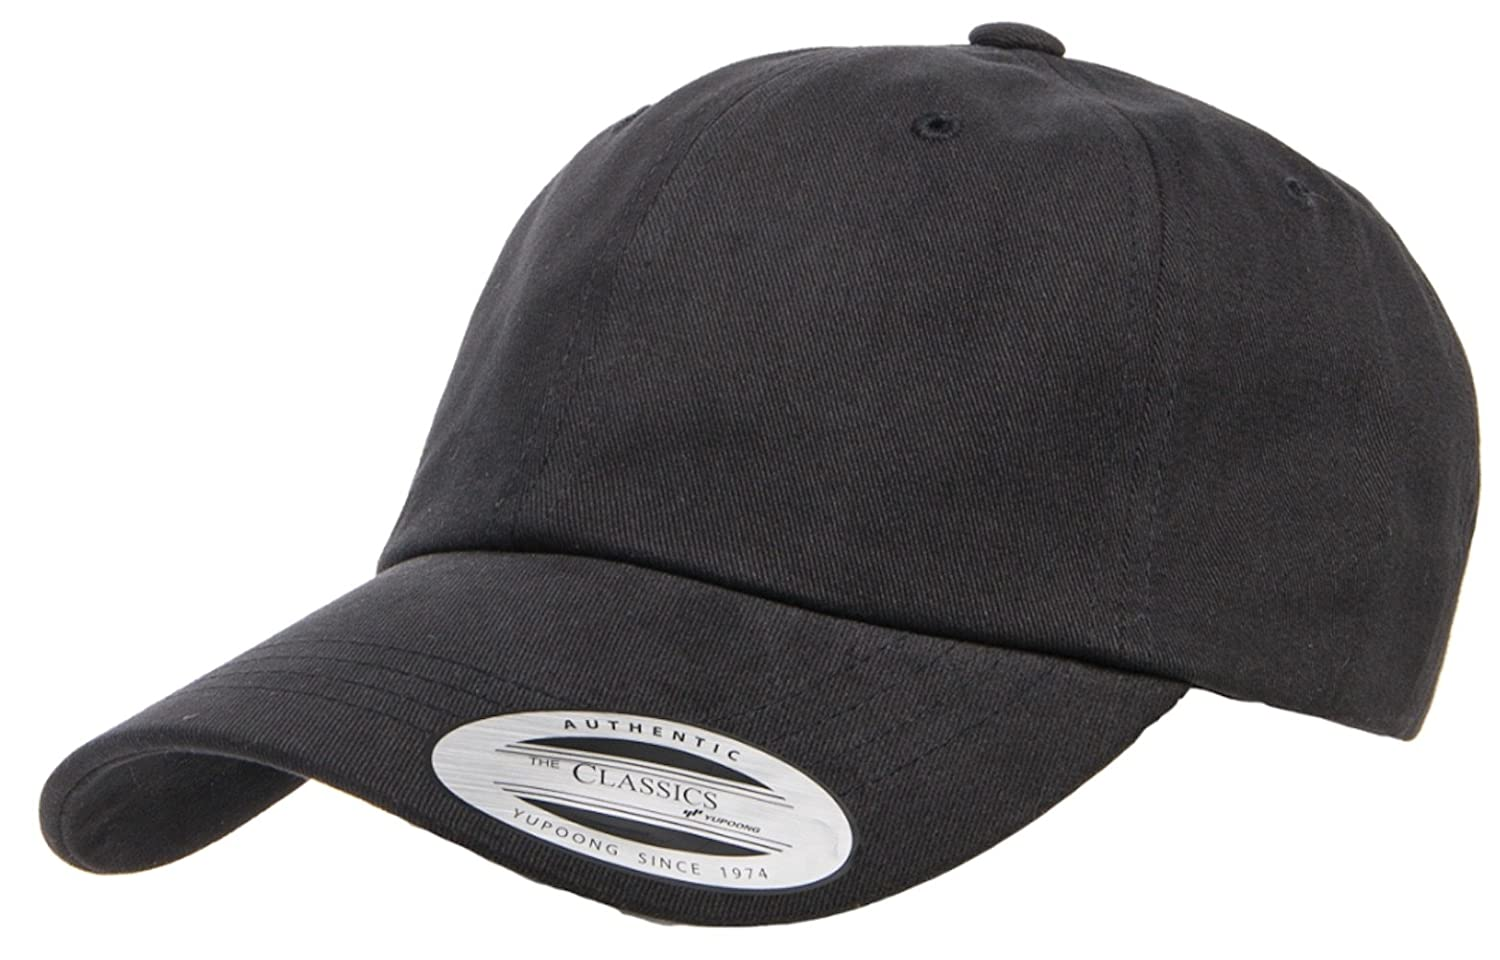 8d39c6aa4ca96 Amazon.com  Yupoong Peached Cotton Twill Dad Cap